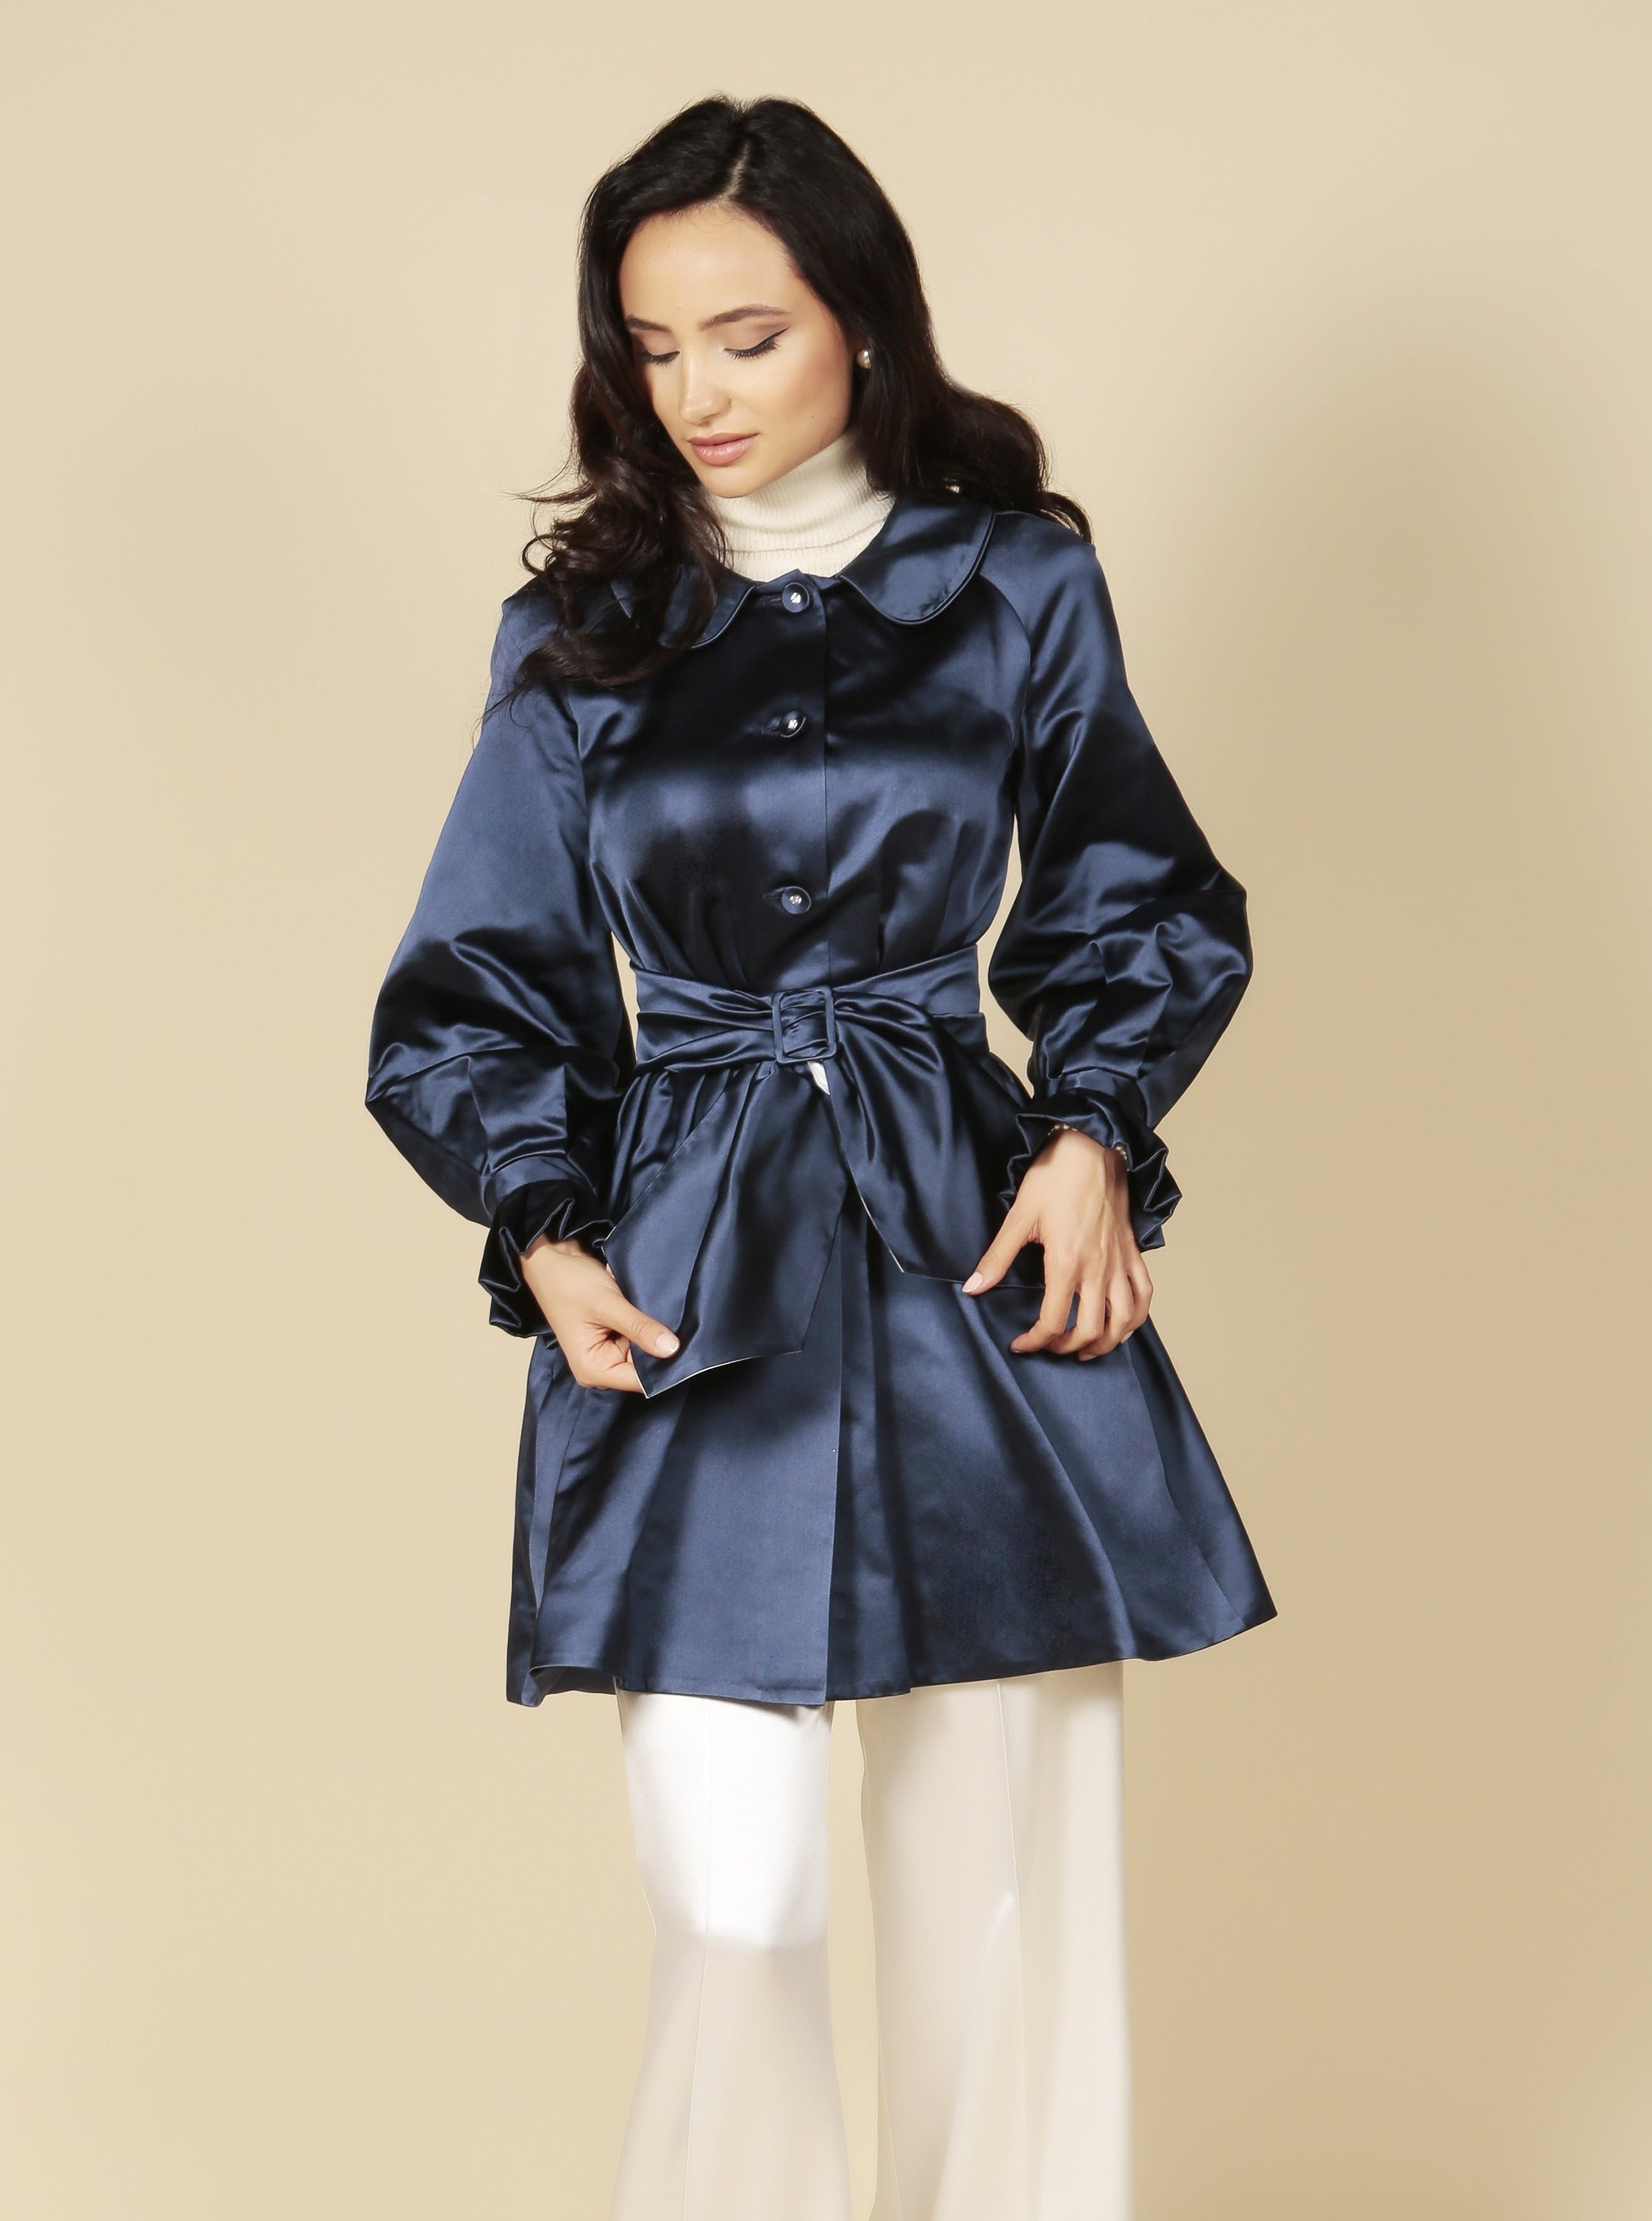 'La Dolce Vita' Silk Duchess Evening Coat in Zaffiro